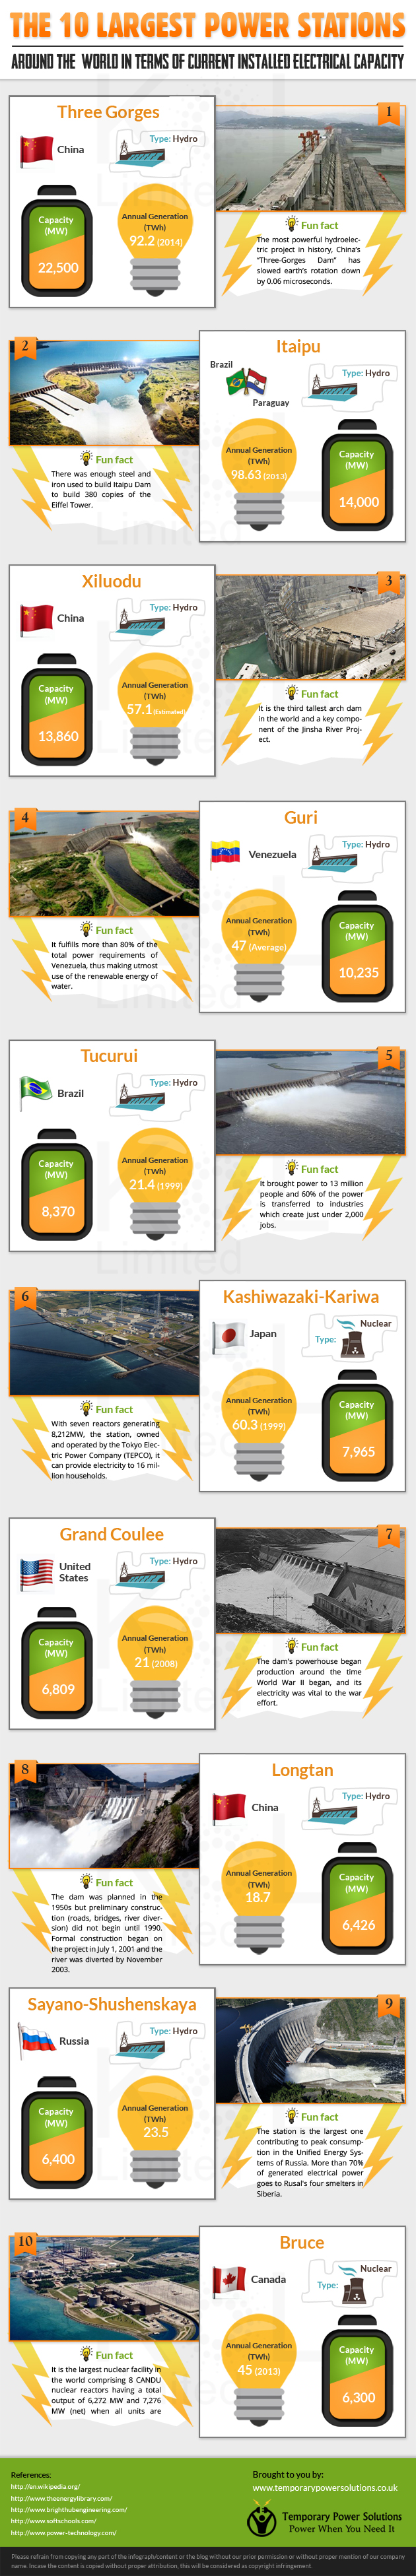 The 10 Largest Power Stations Infographic